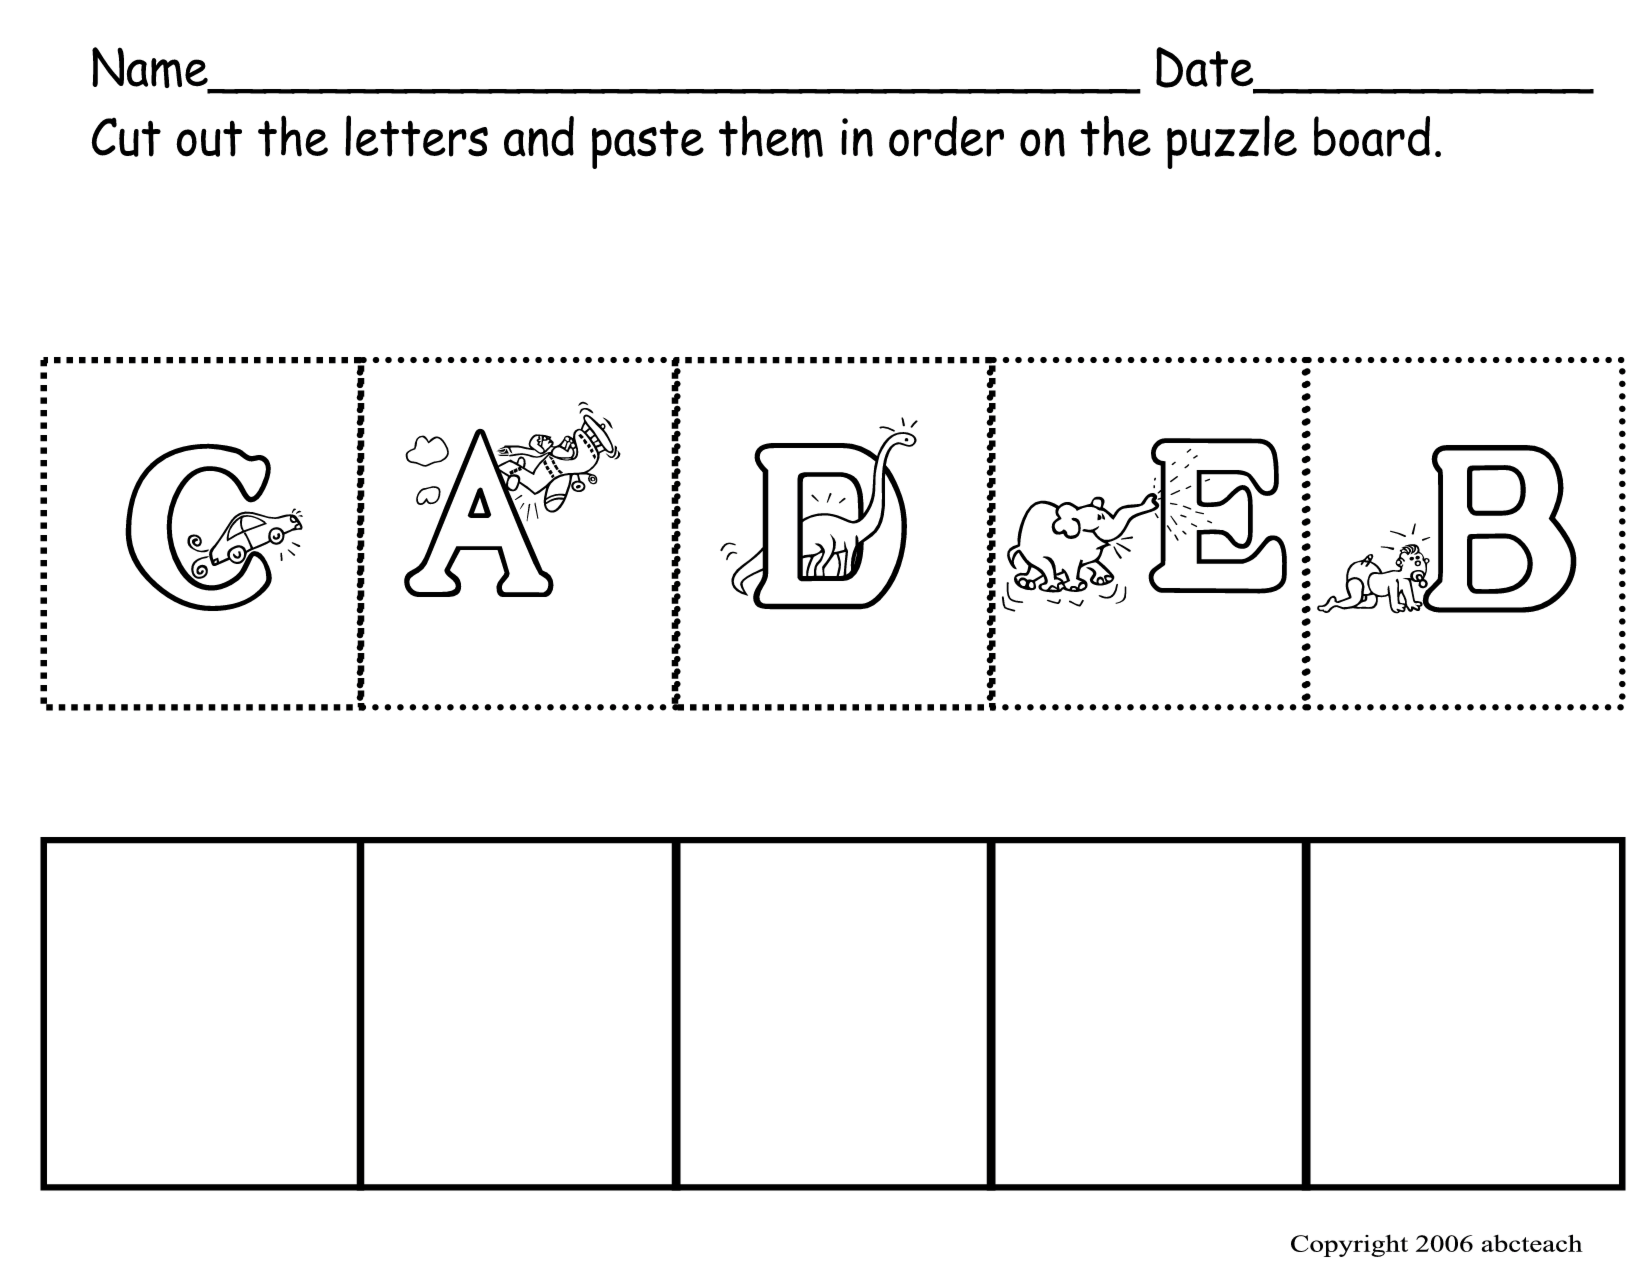 Worksheets Abc Traceable Worksheets alphabet worksheets for preschoolers abc preschool pdf pdf